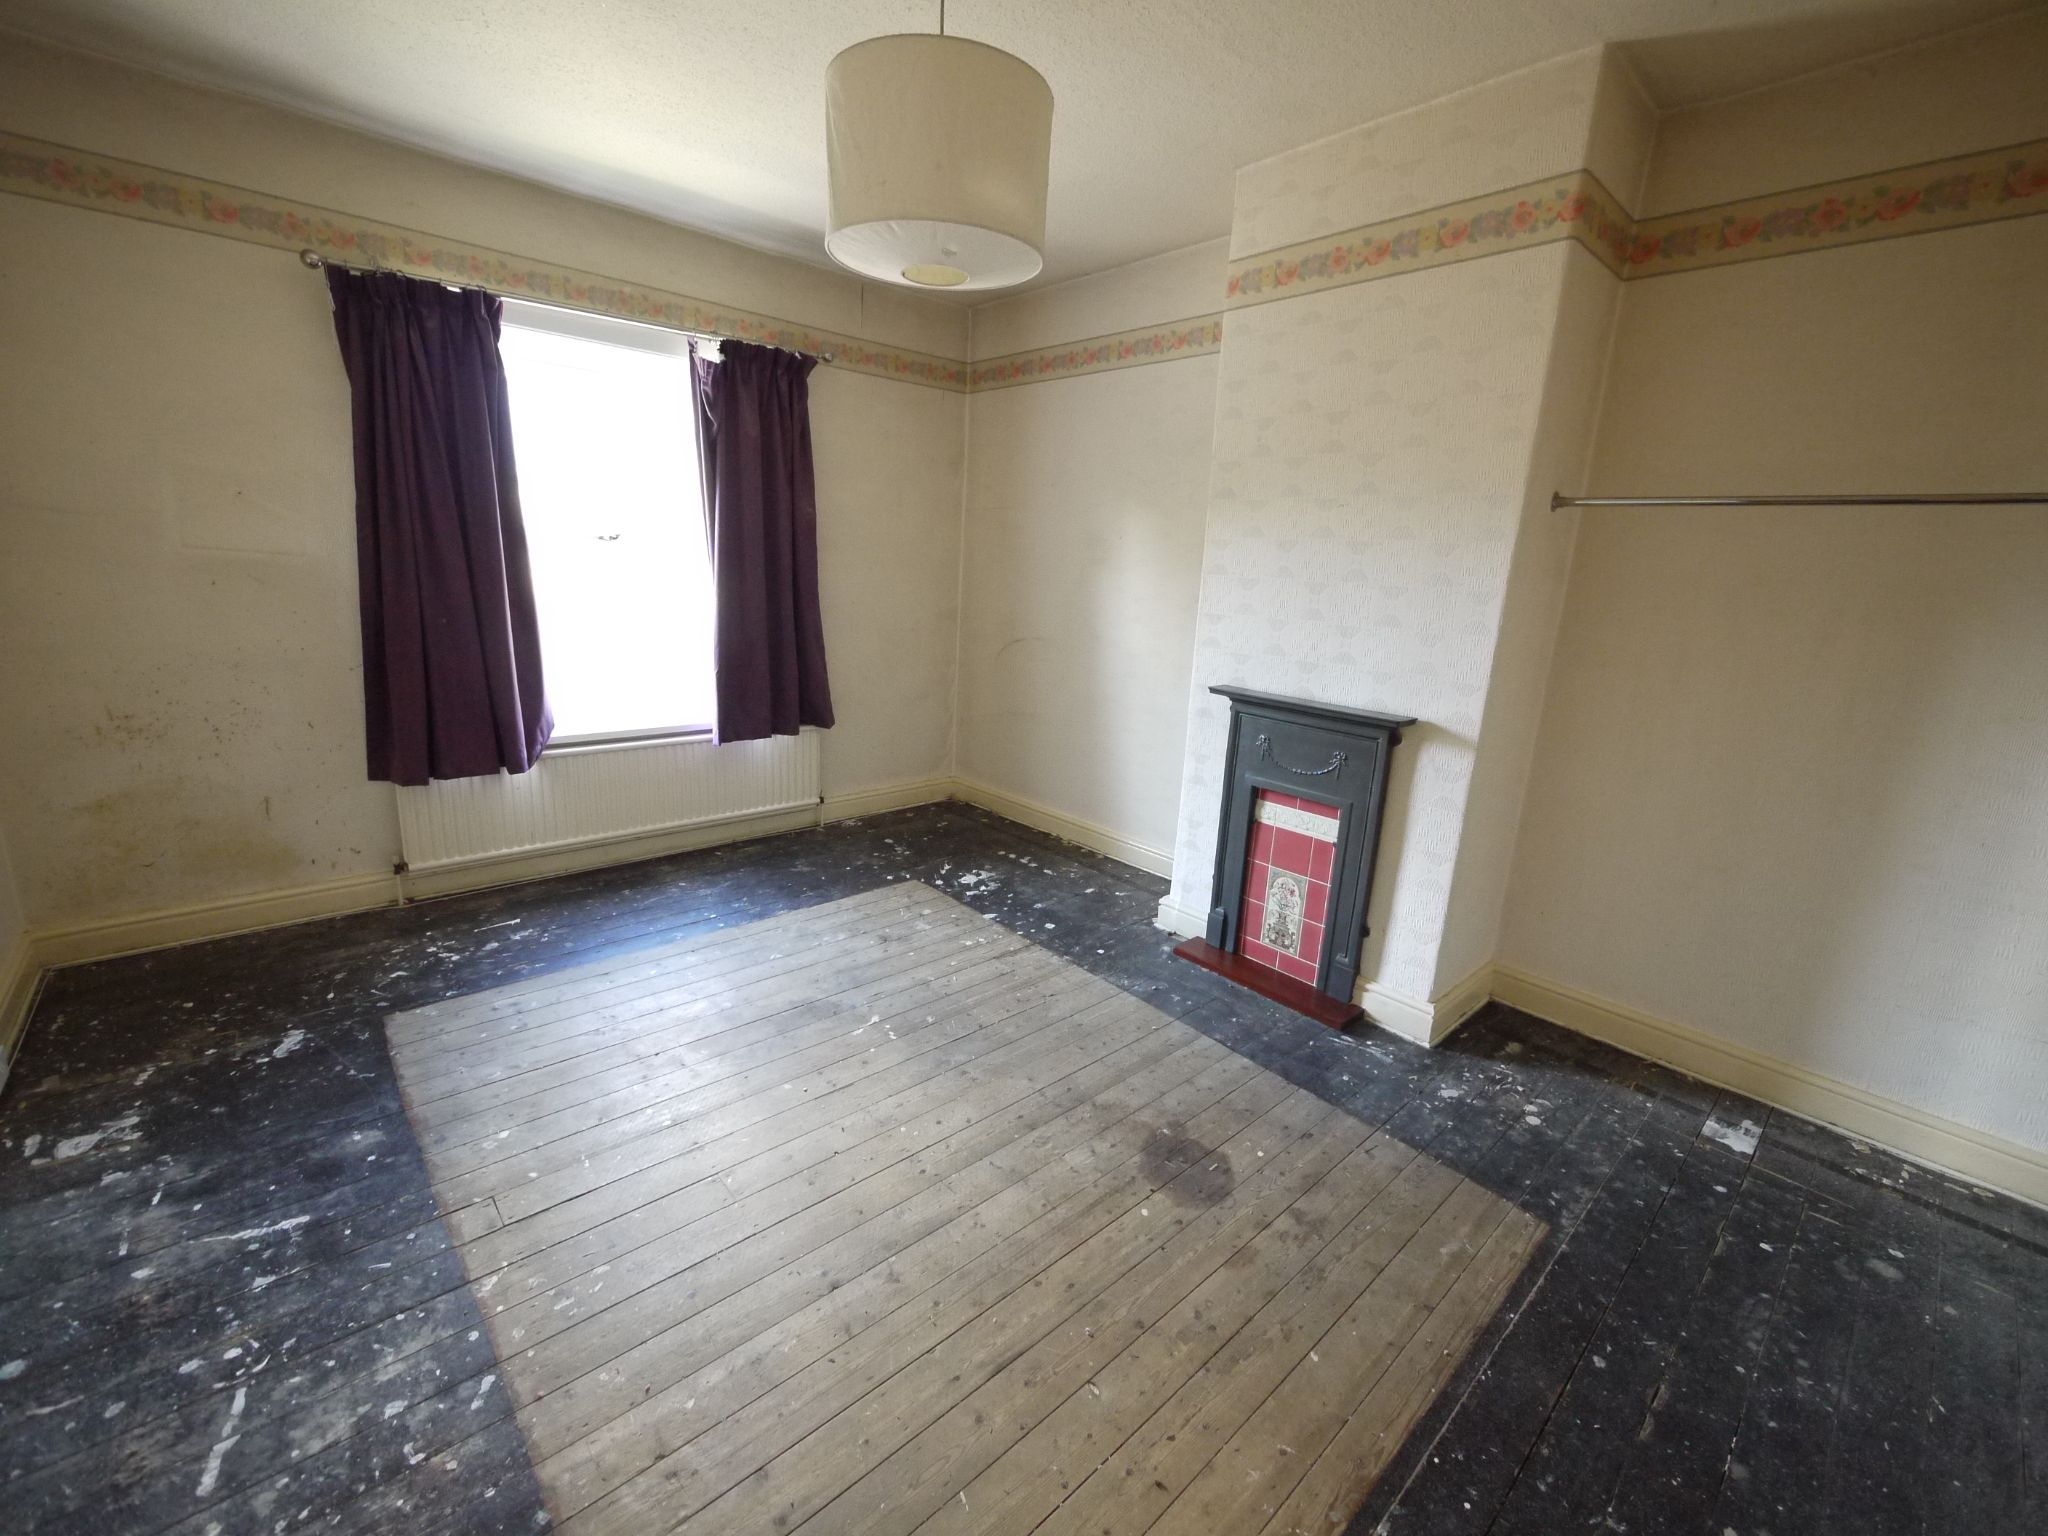 3 bedroom end terraced house SSTC in Brighouse - Bedroom 1.